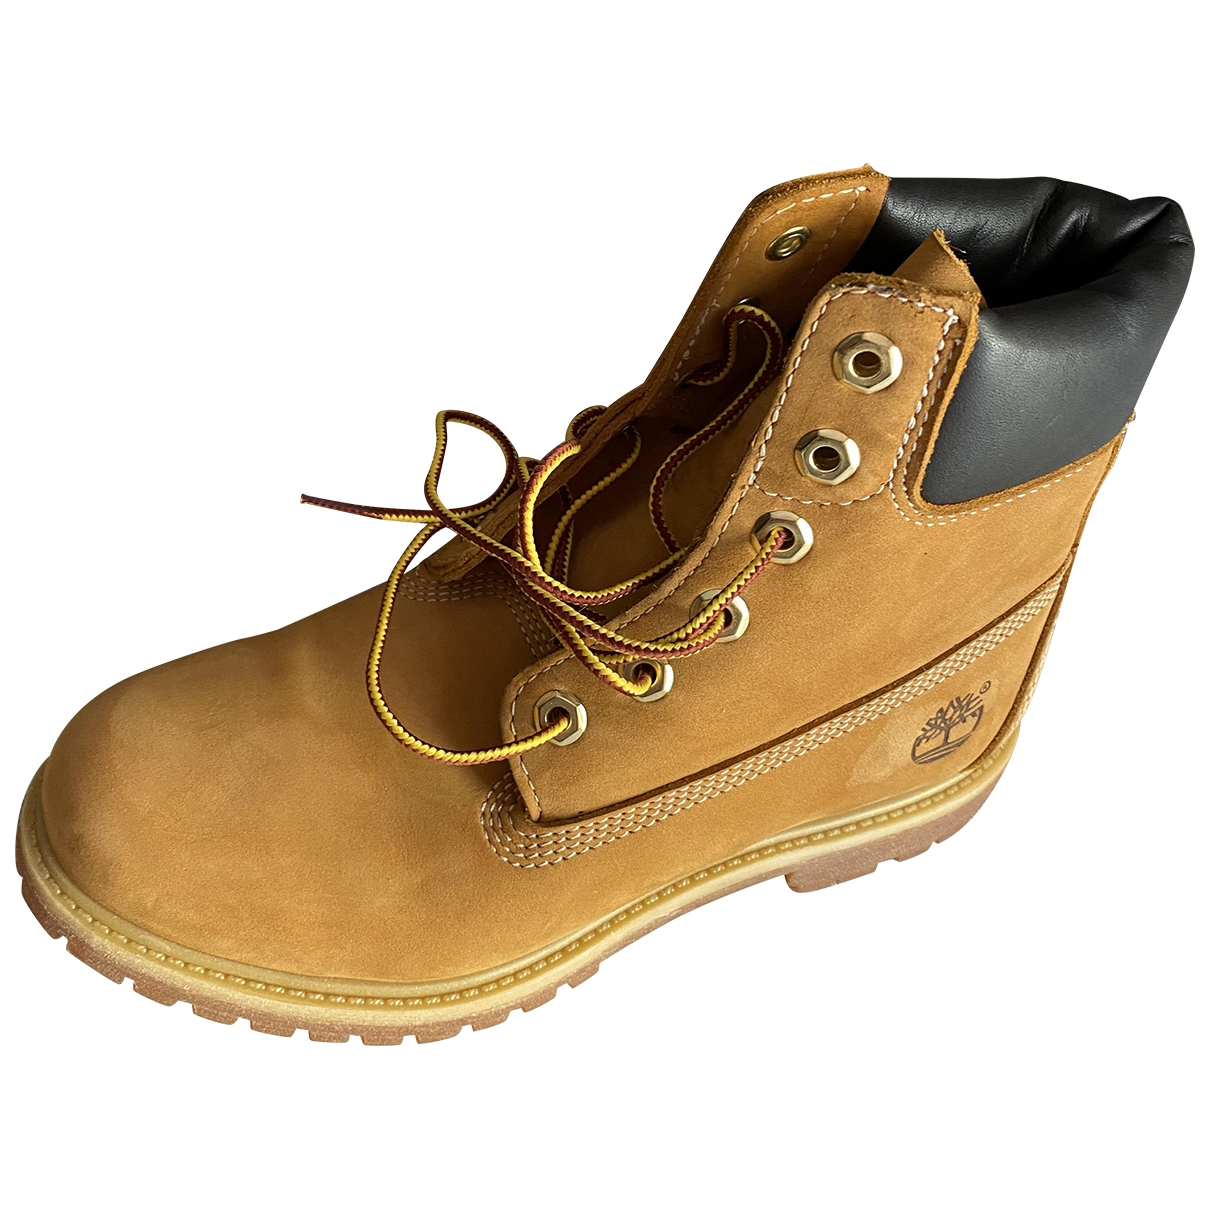 Timberland \N Beige Leather Ankle boots for Women 7.5 US